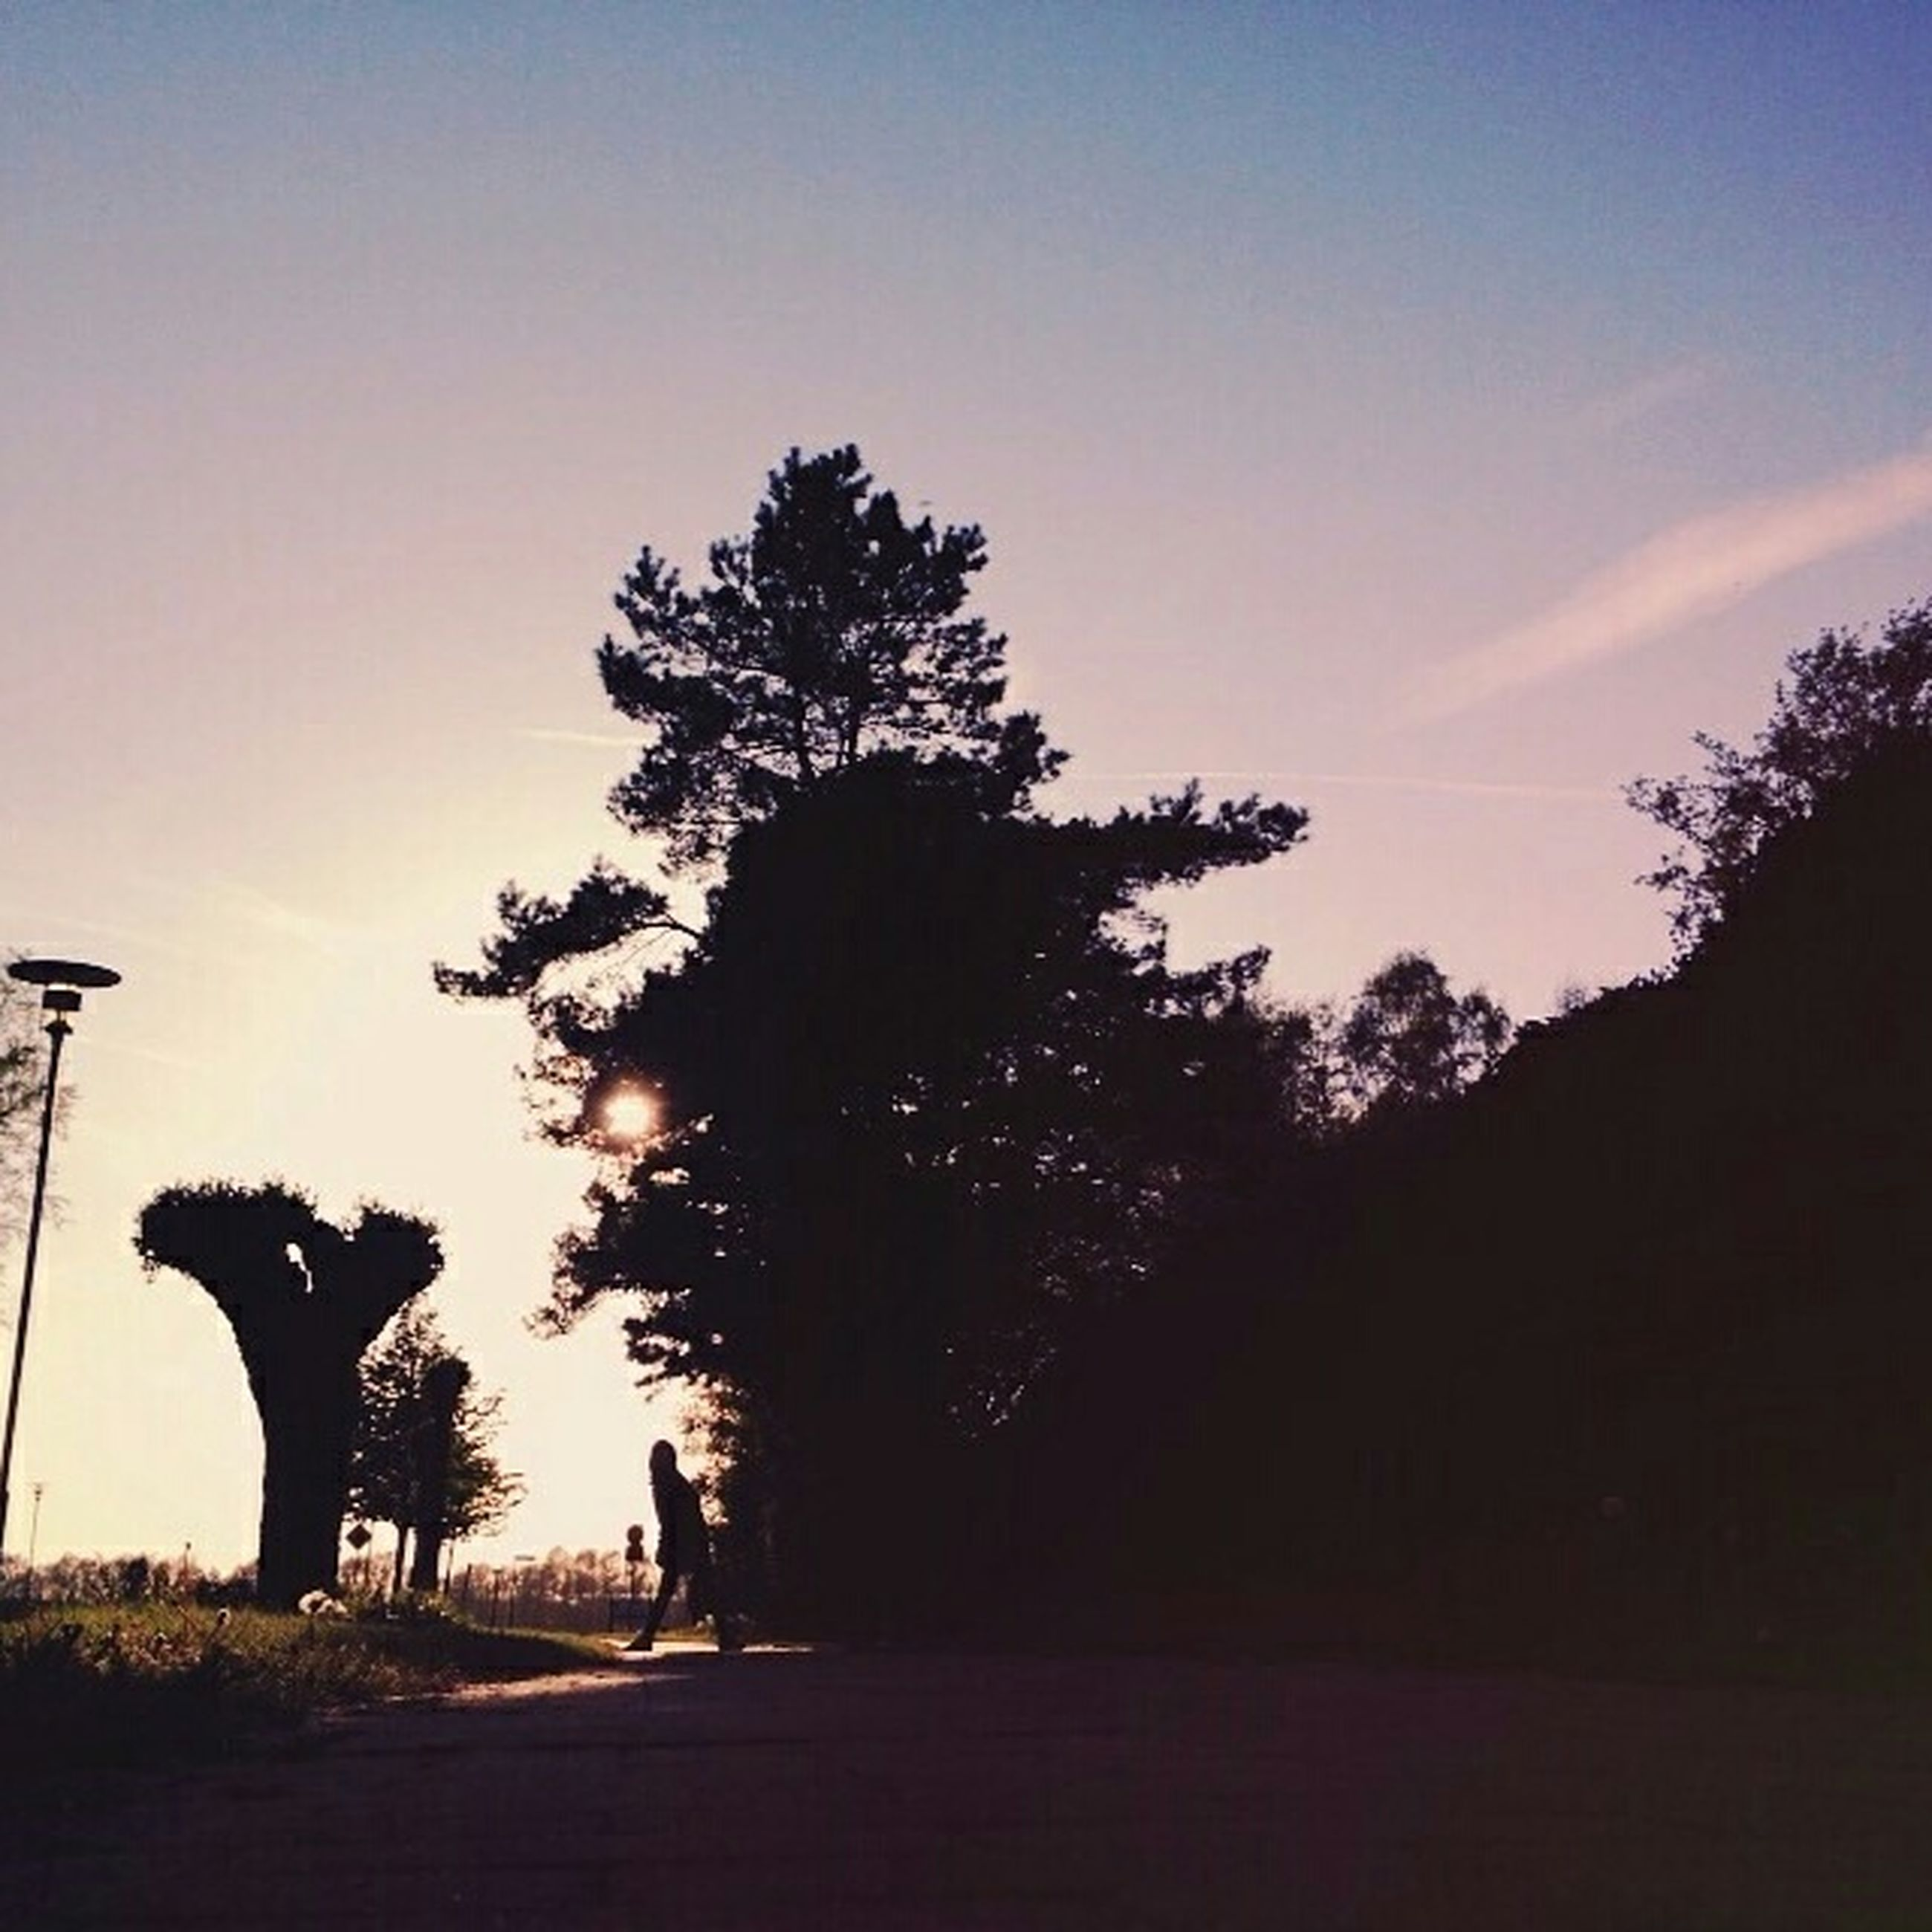 tree, silhouette, sky, sunset, the way forward, tranquility, tranquil scene, road, nature, beauty in nature, scenics, growth, transportation, dusk, landscape, outdoors, diminishing perspective, no people, street, idyllic